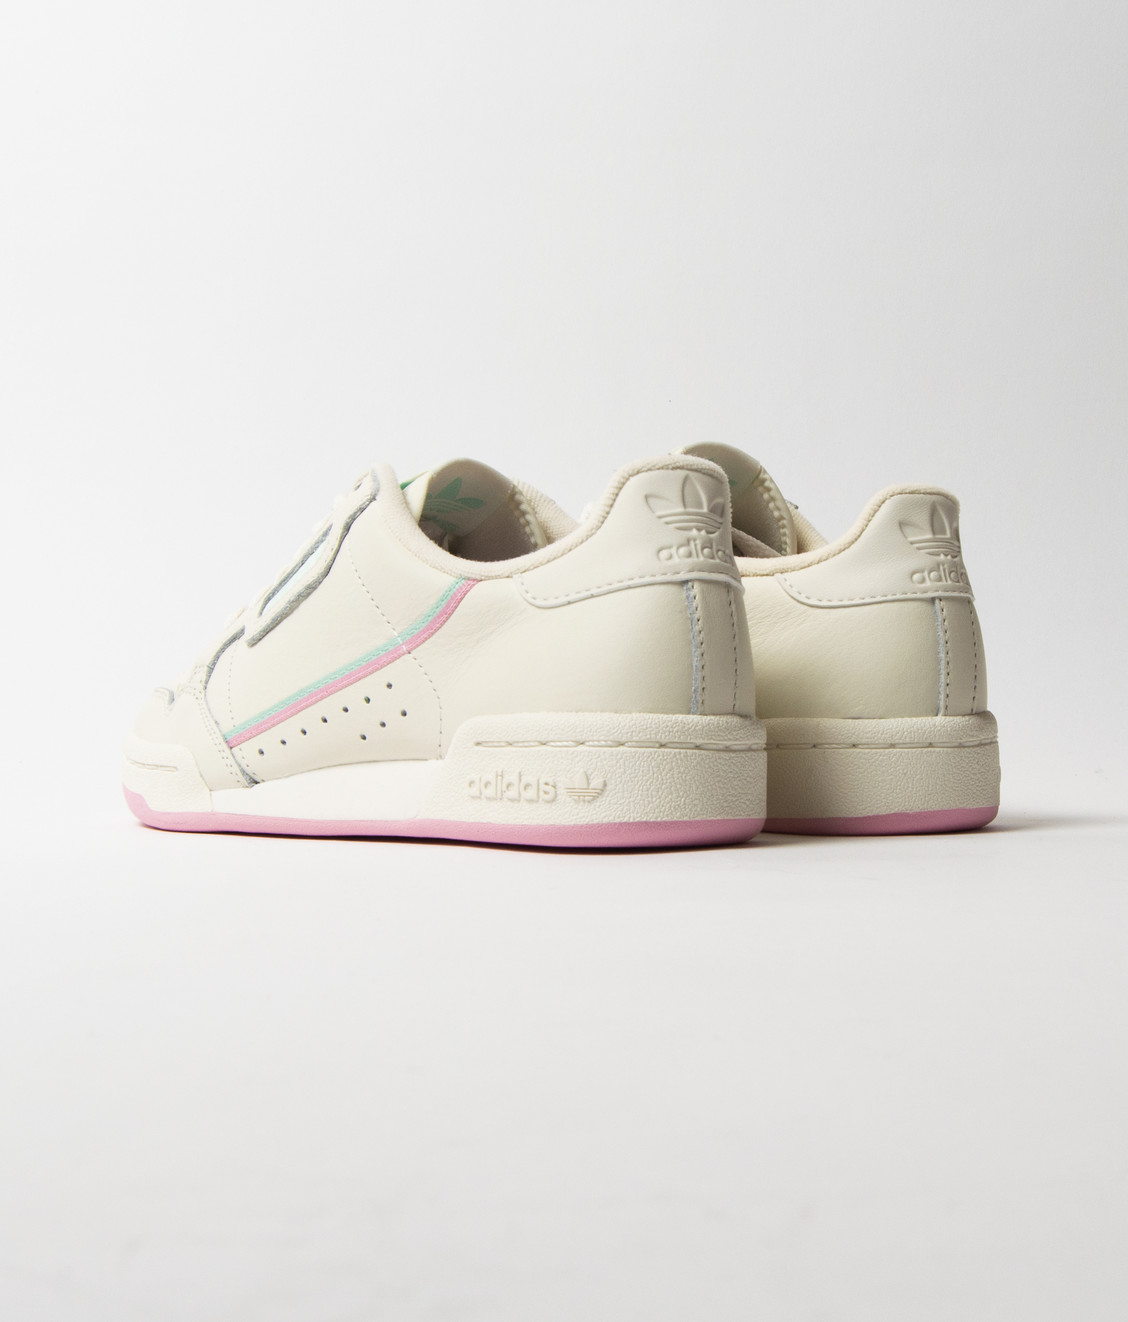 Adidas Adidas Continental 80 Offwhite True Pink